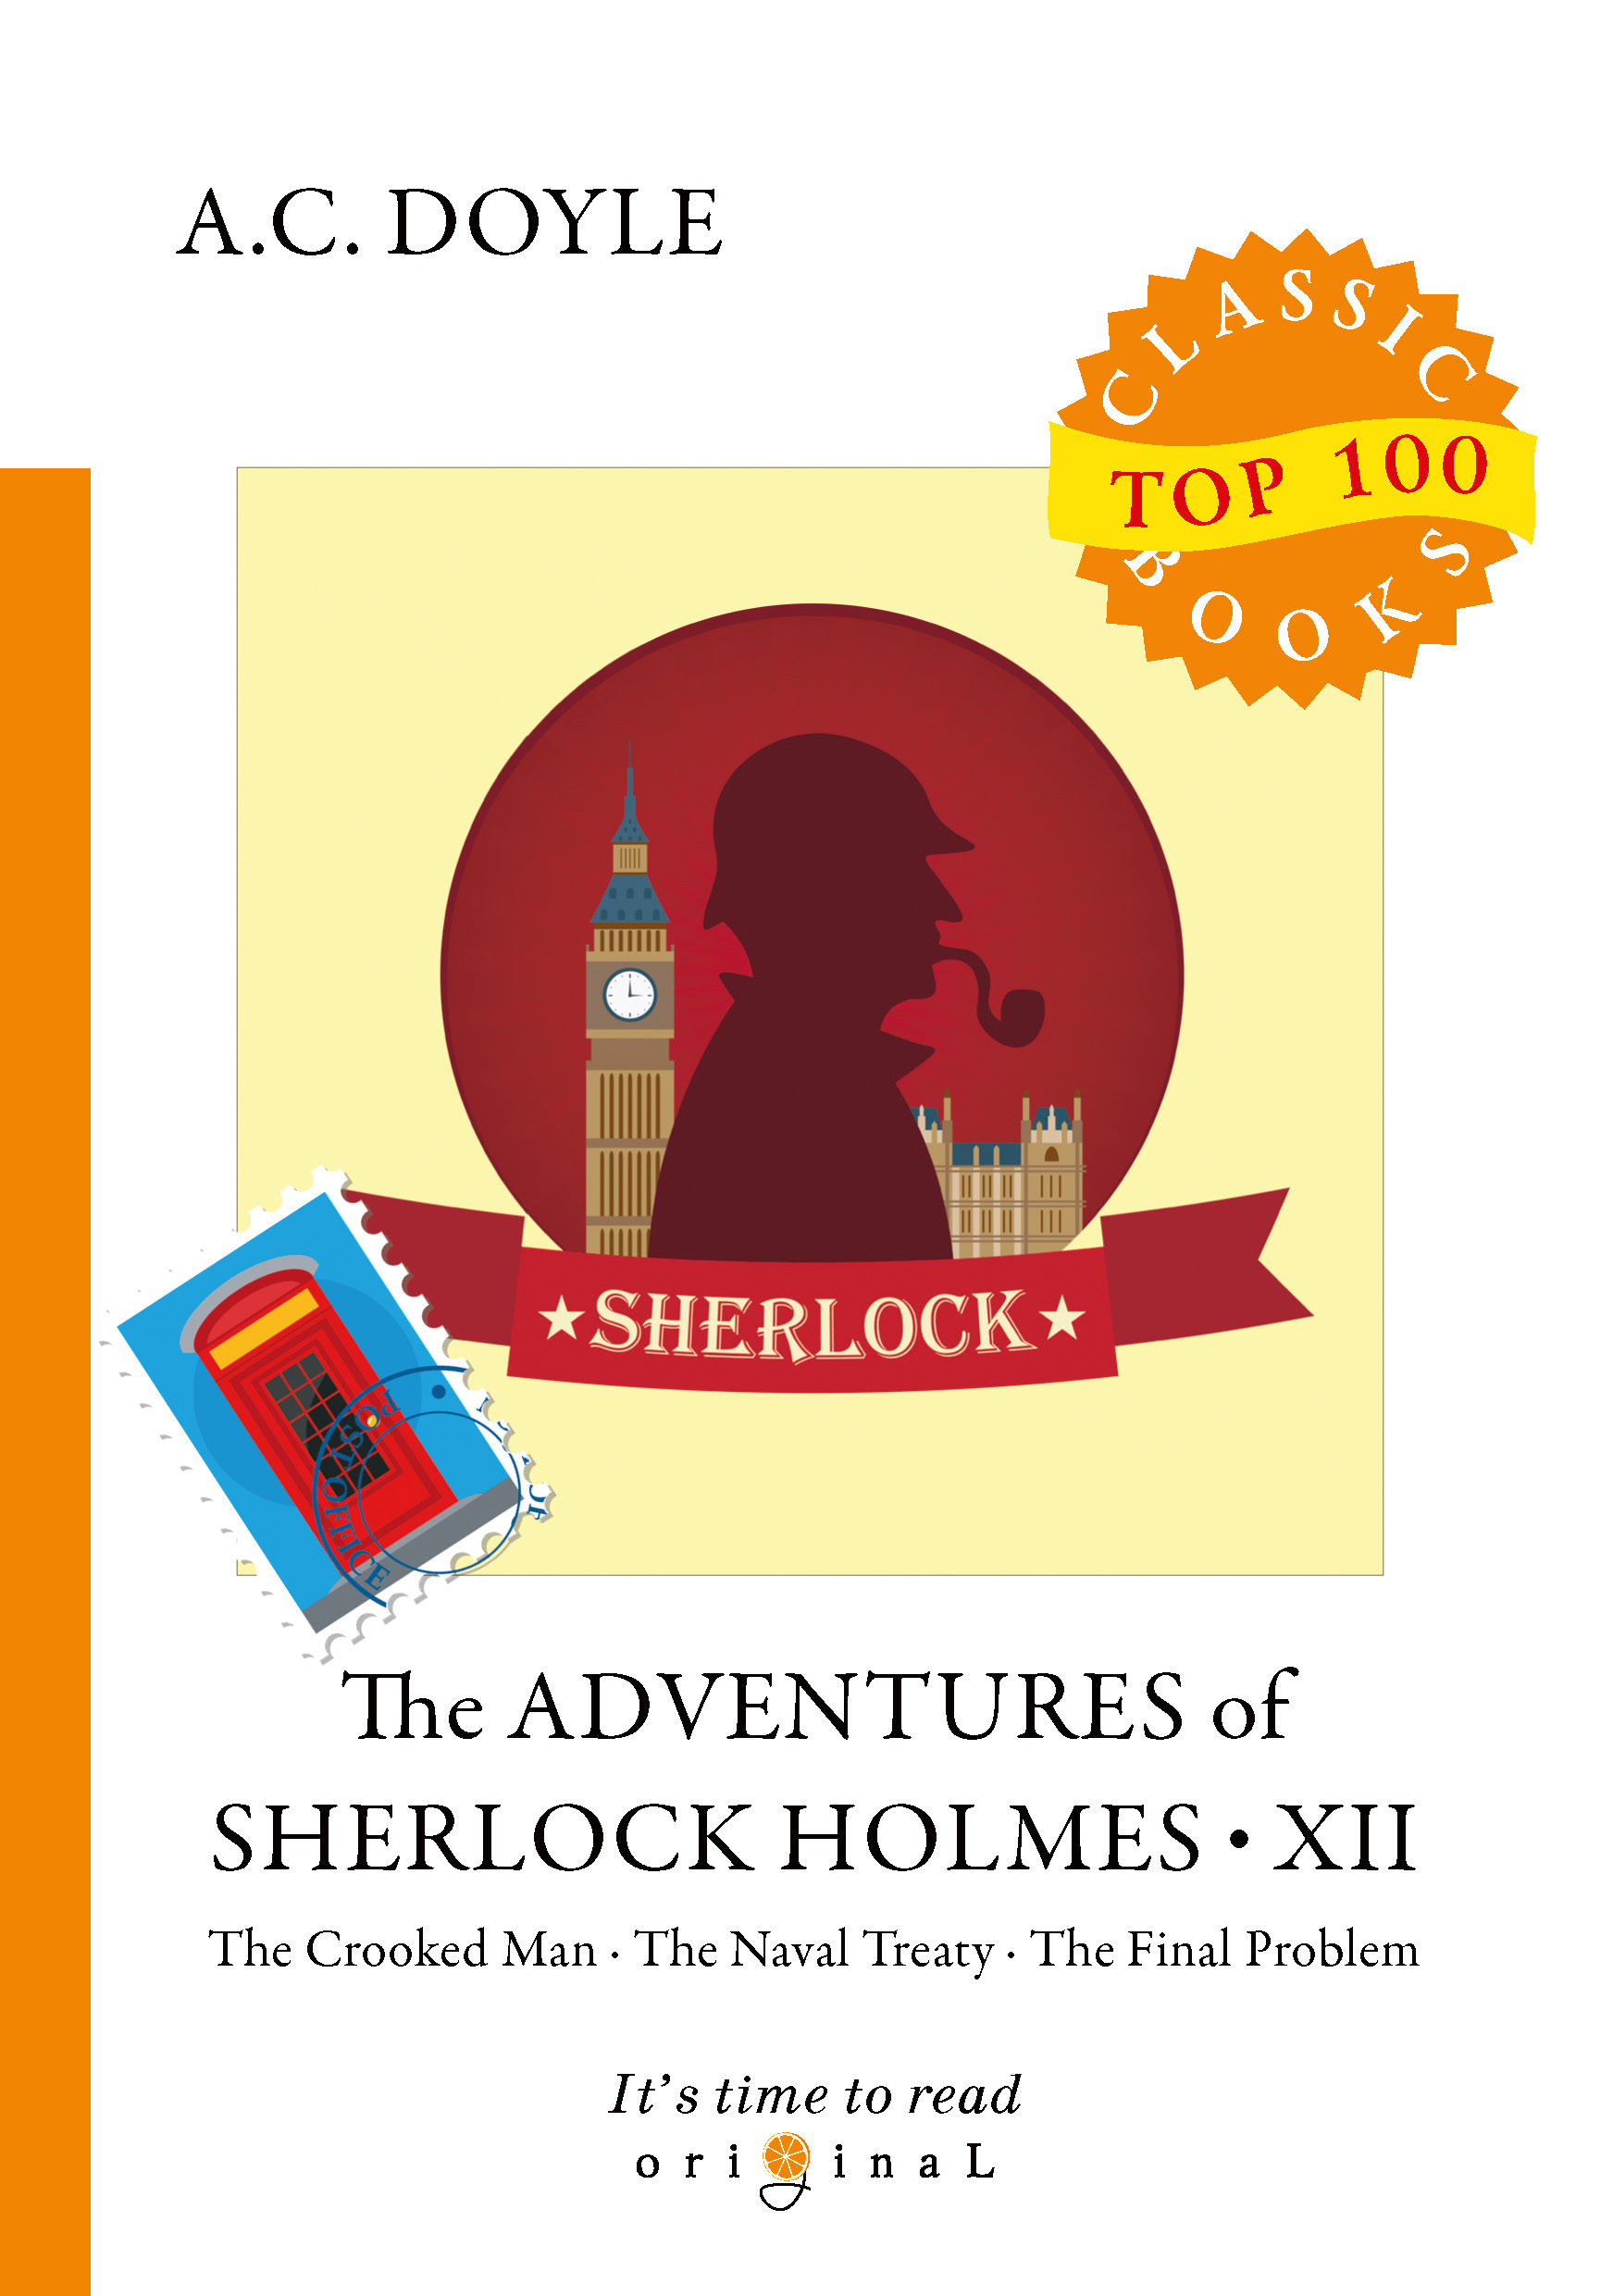 A. C. Doyle The Adventures of Sherlock Holmes XII